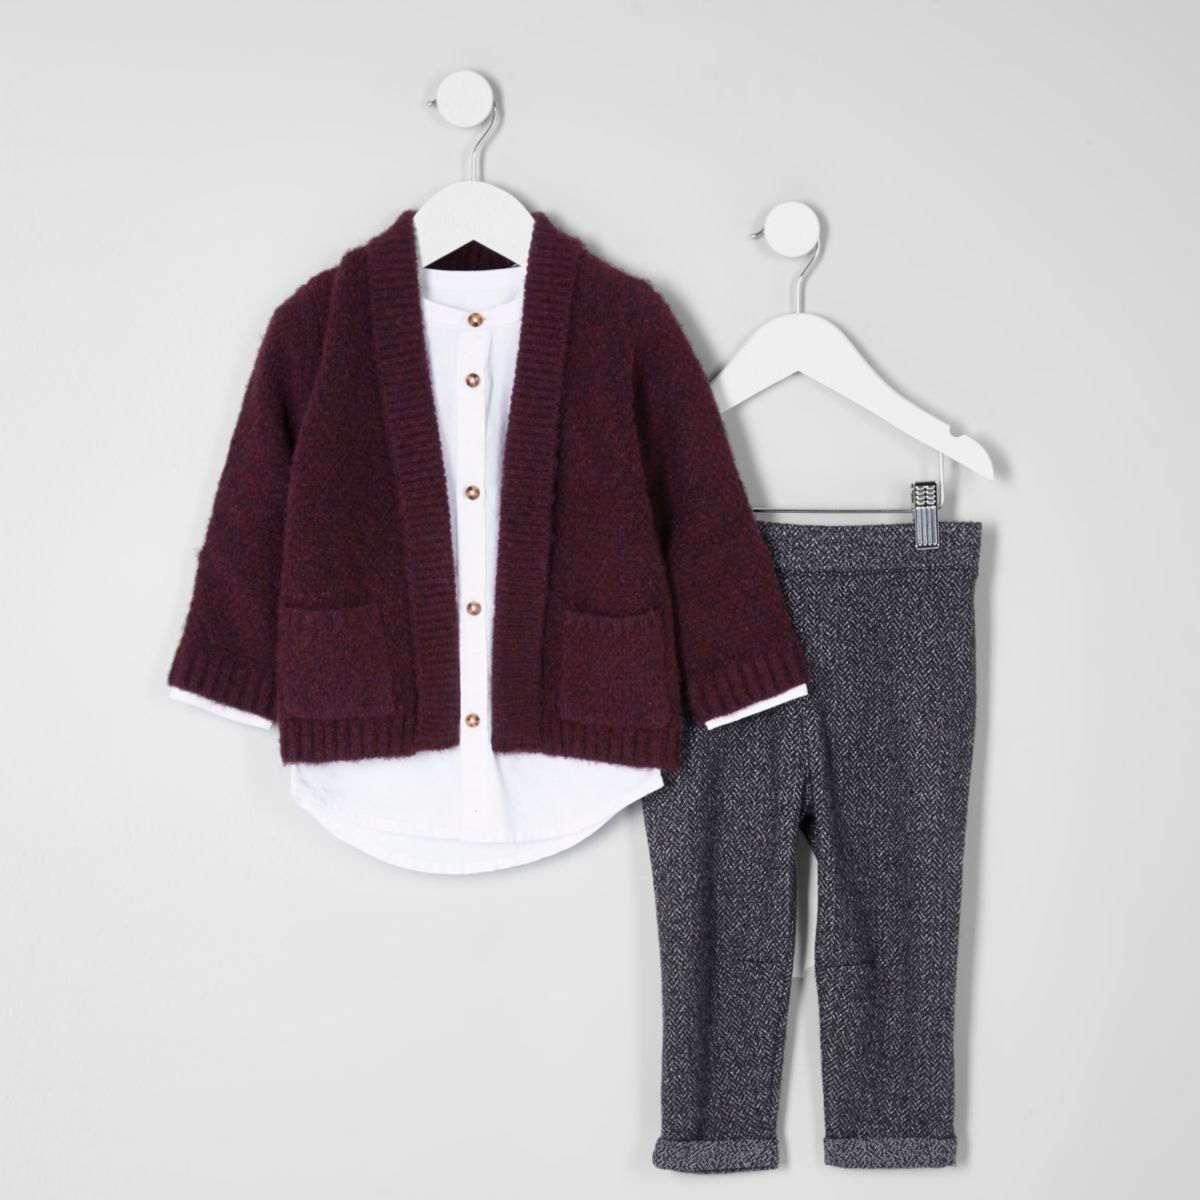 Mini boys red cardigan and white shirt outfit